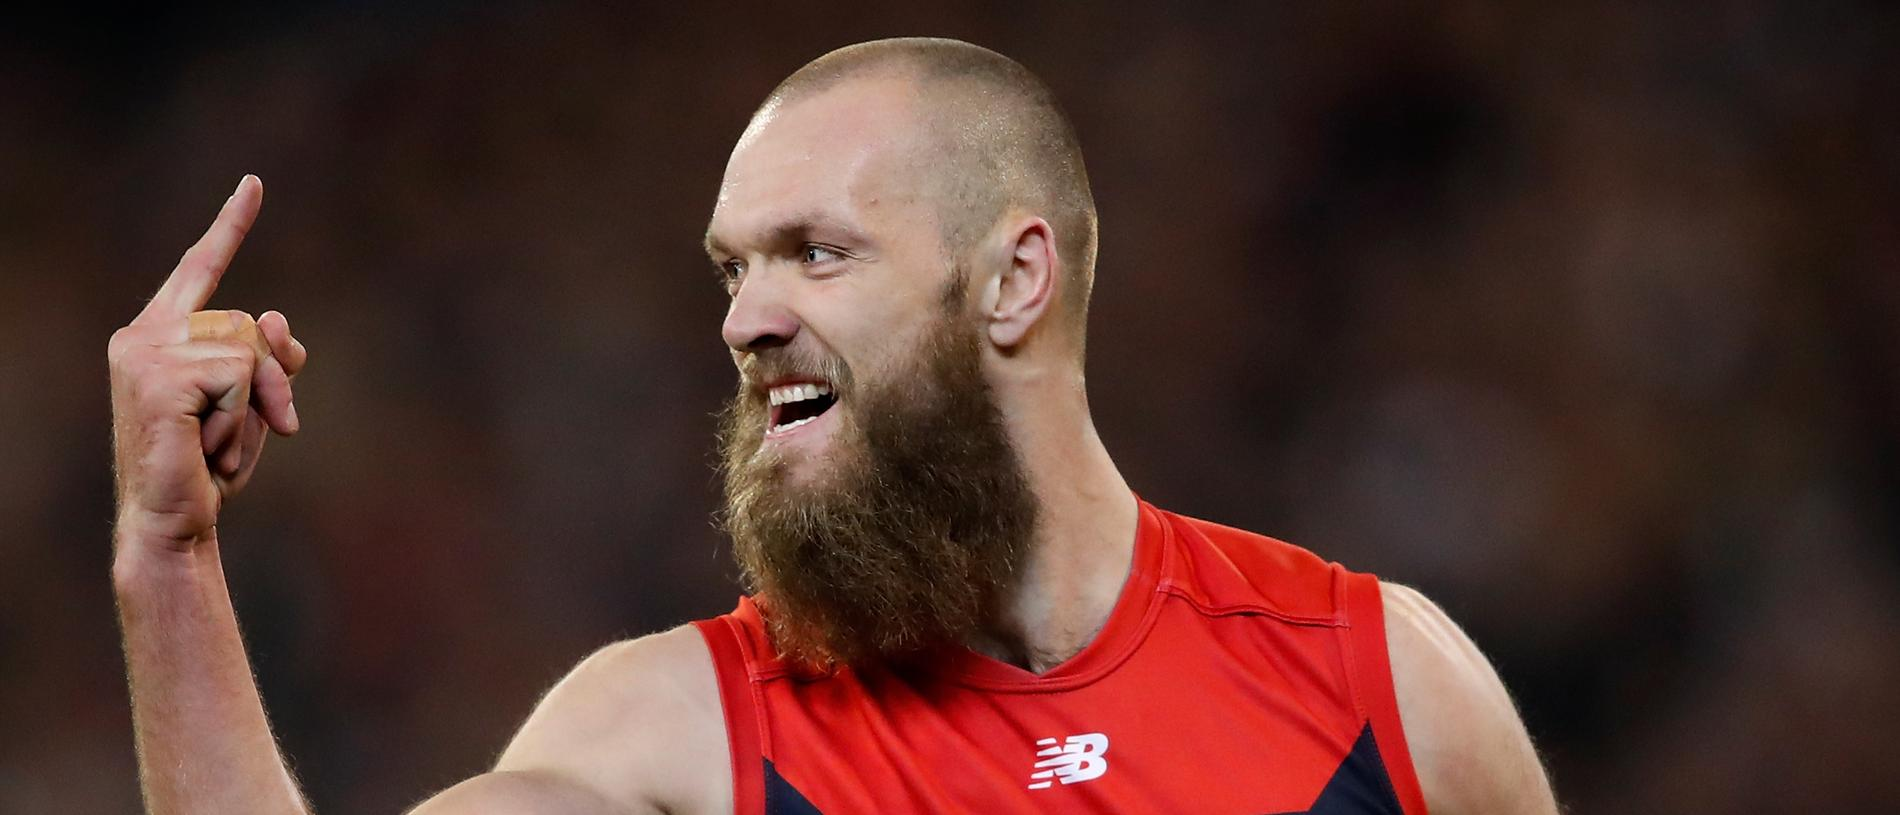 MELBOURNE, AUSTRALIA - SEPTEMBER 07: Max Gawn of the Demons celebrates a goal during the 2018 AFL First Elimination Final match between the Melbourne Demons and the Geelong Cats at the Melbourne Cricket Ground on September 07, 2018 in Melbourne, Australia. (Photo by Adam Trafford/AFL Media/Getty Images)